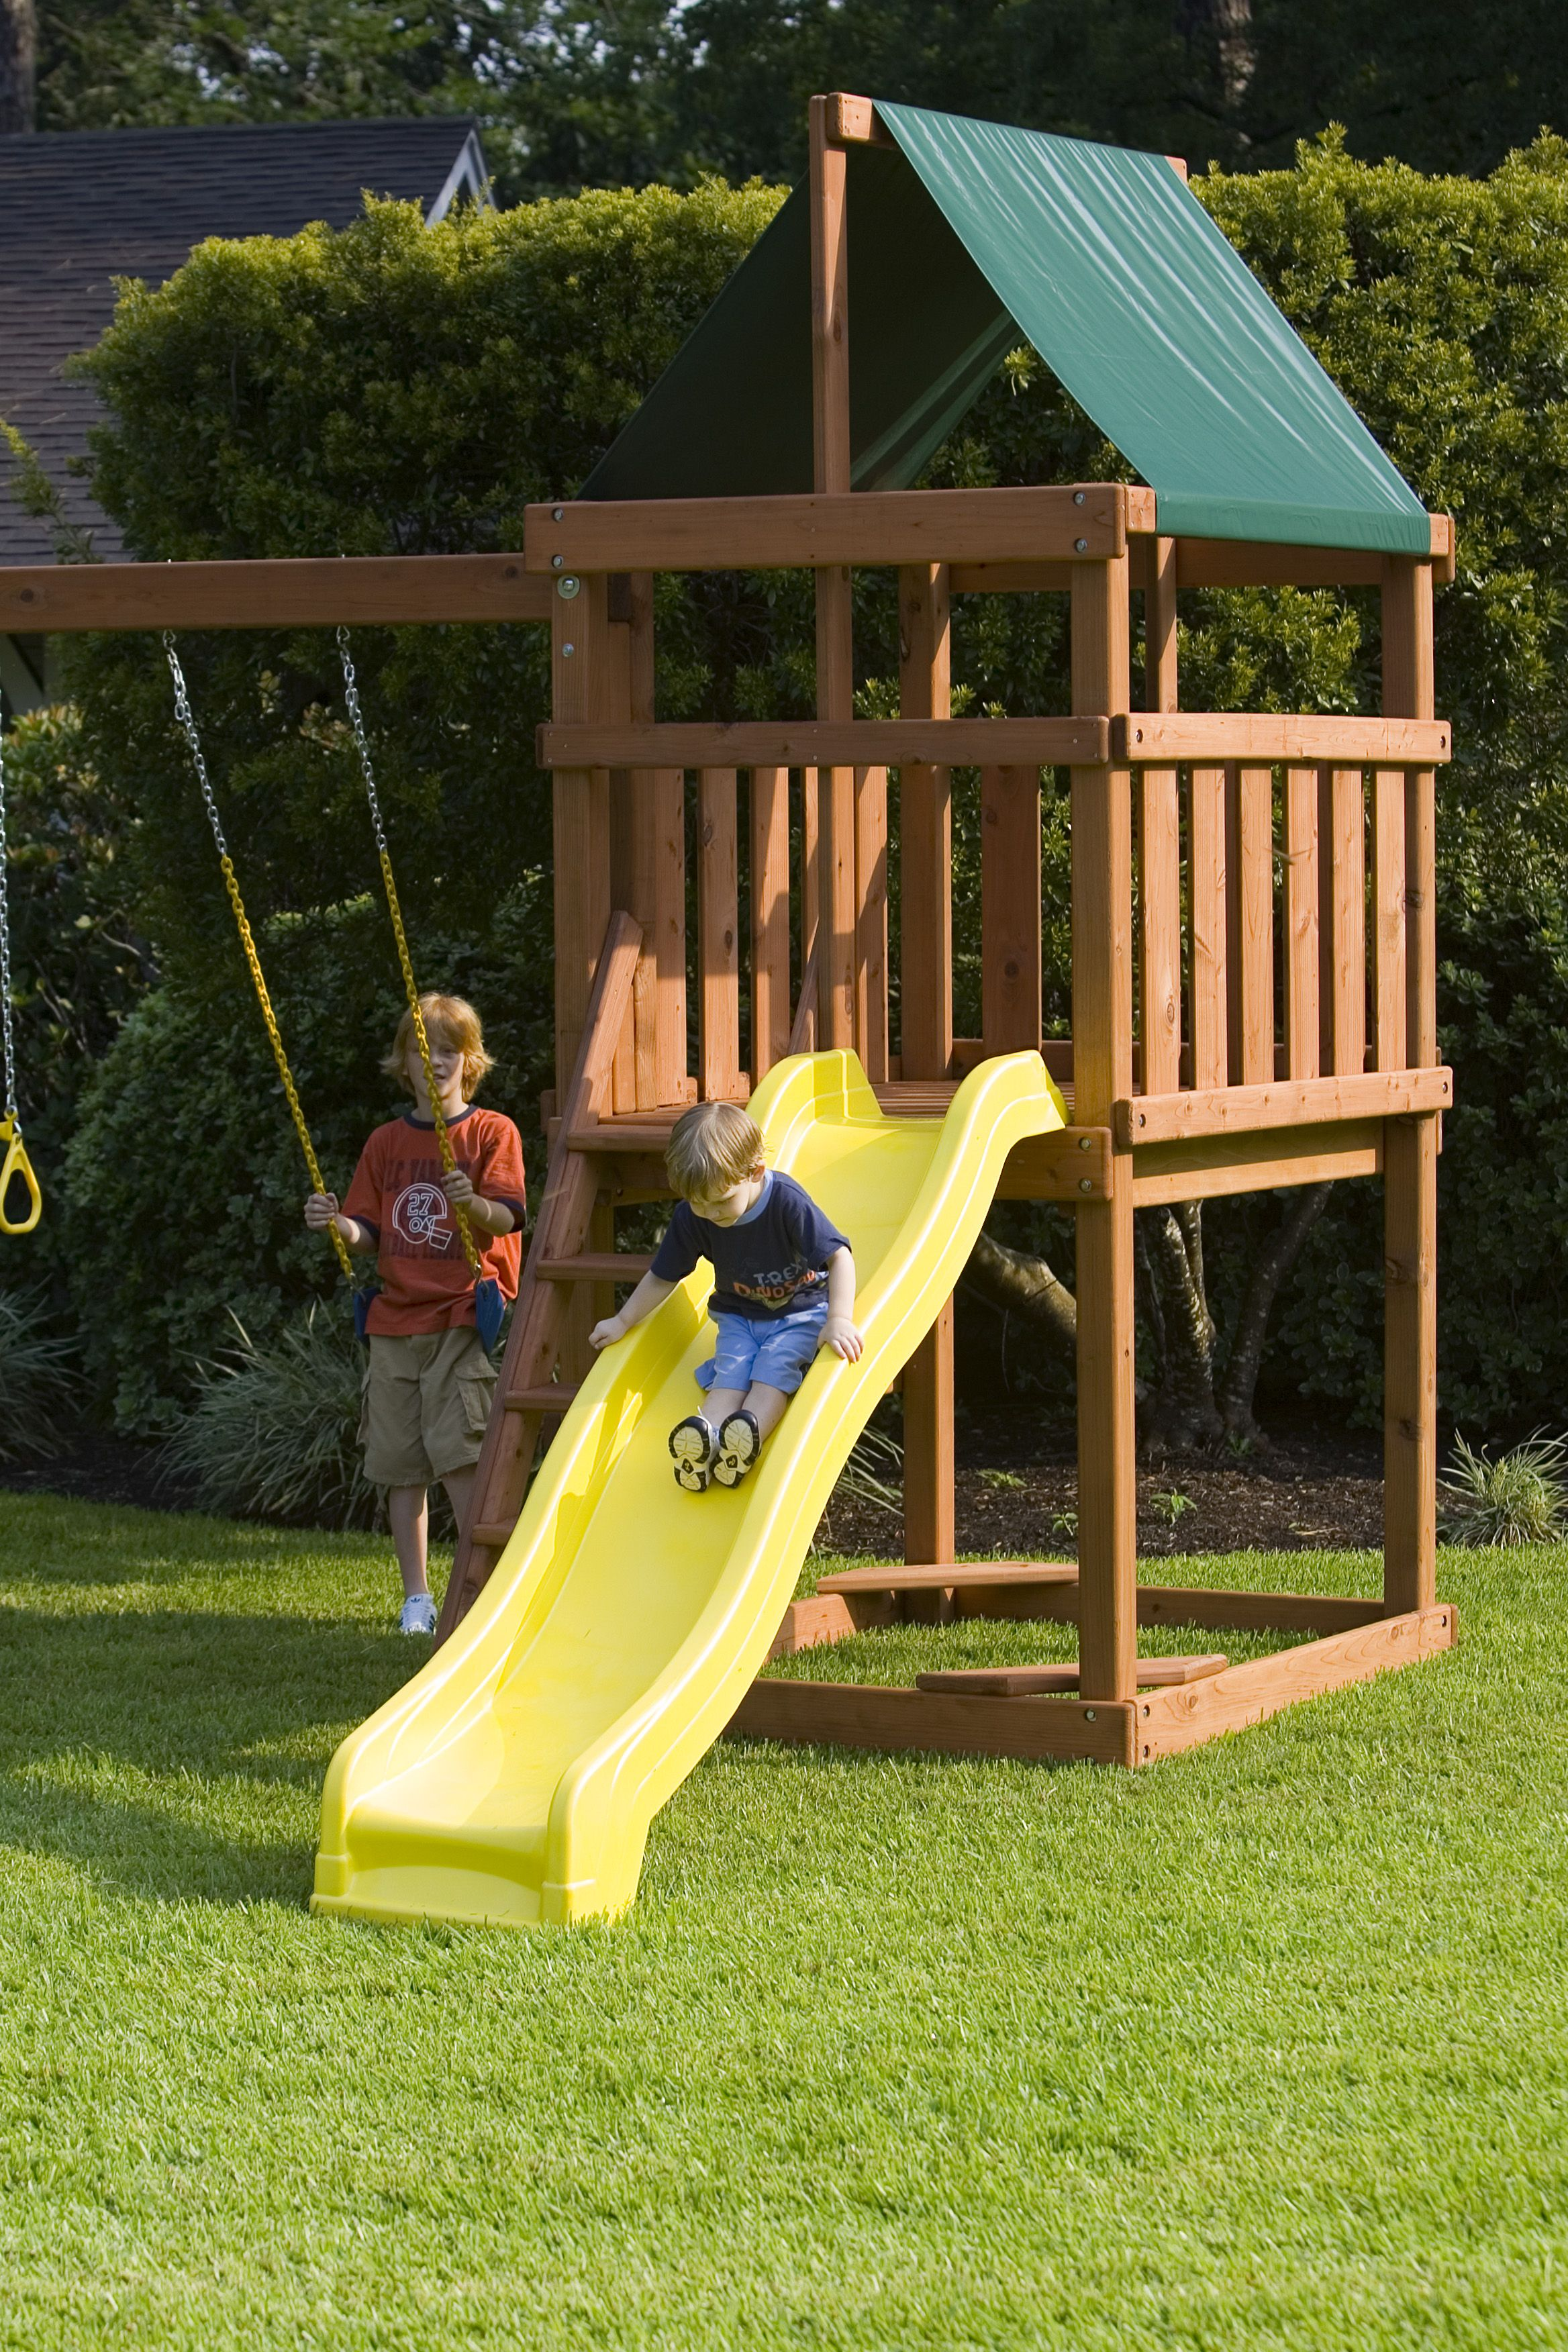 The Endeavor Do It Yourself Wooden Swingset And Wood Fort Play Set